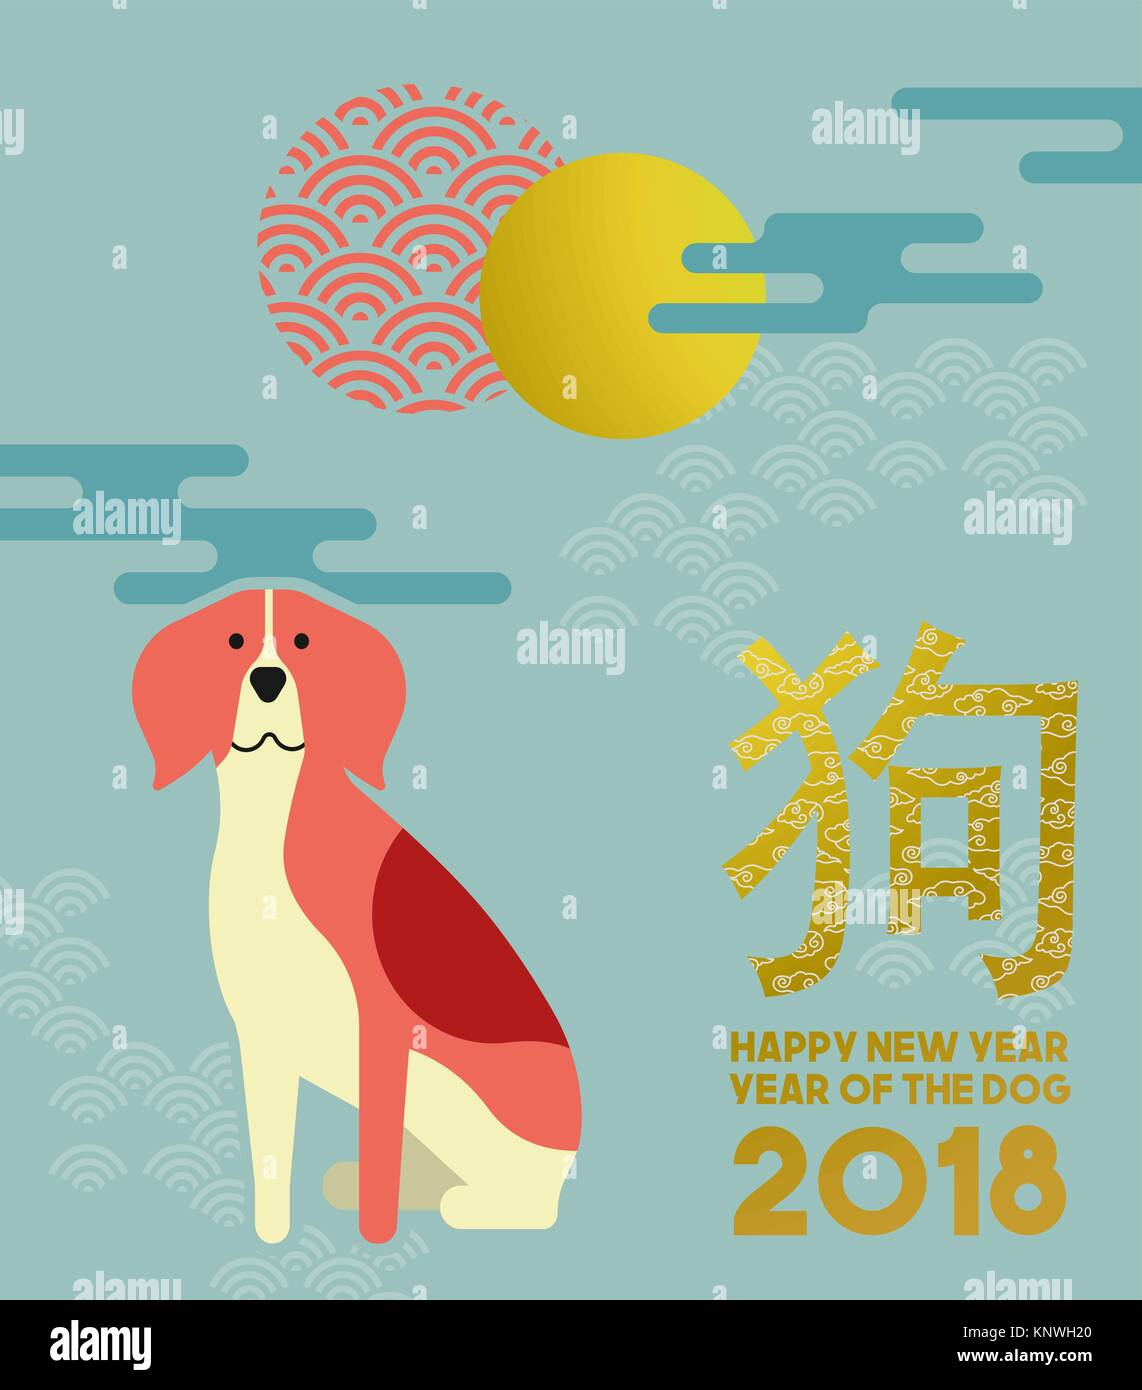 Chinese new year of the dog 2018 illustration in modern flat art style with  beagle, traditional asian ornaments and decoration. EPS10 vector.